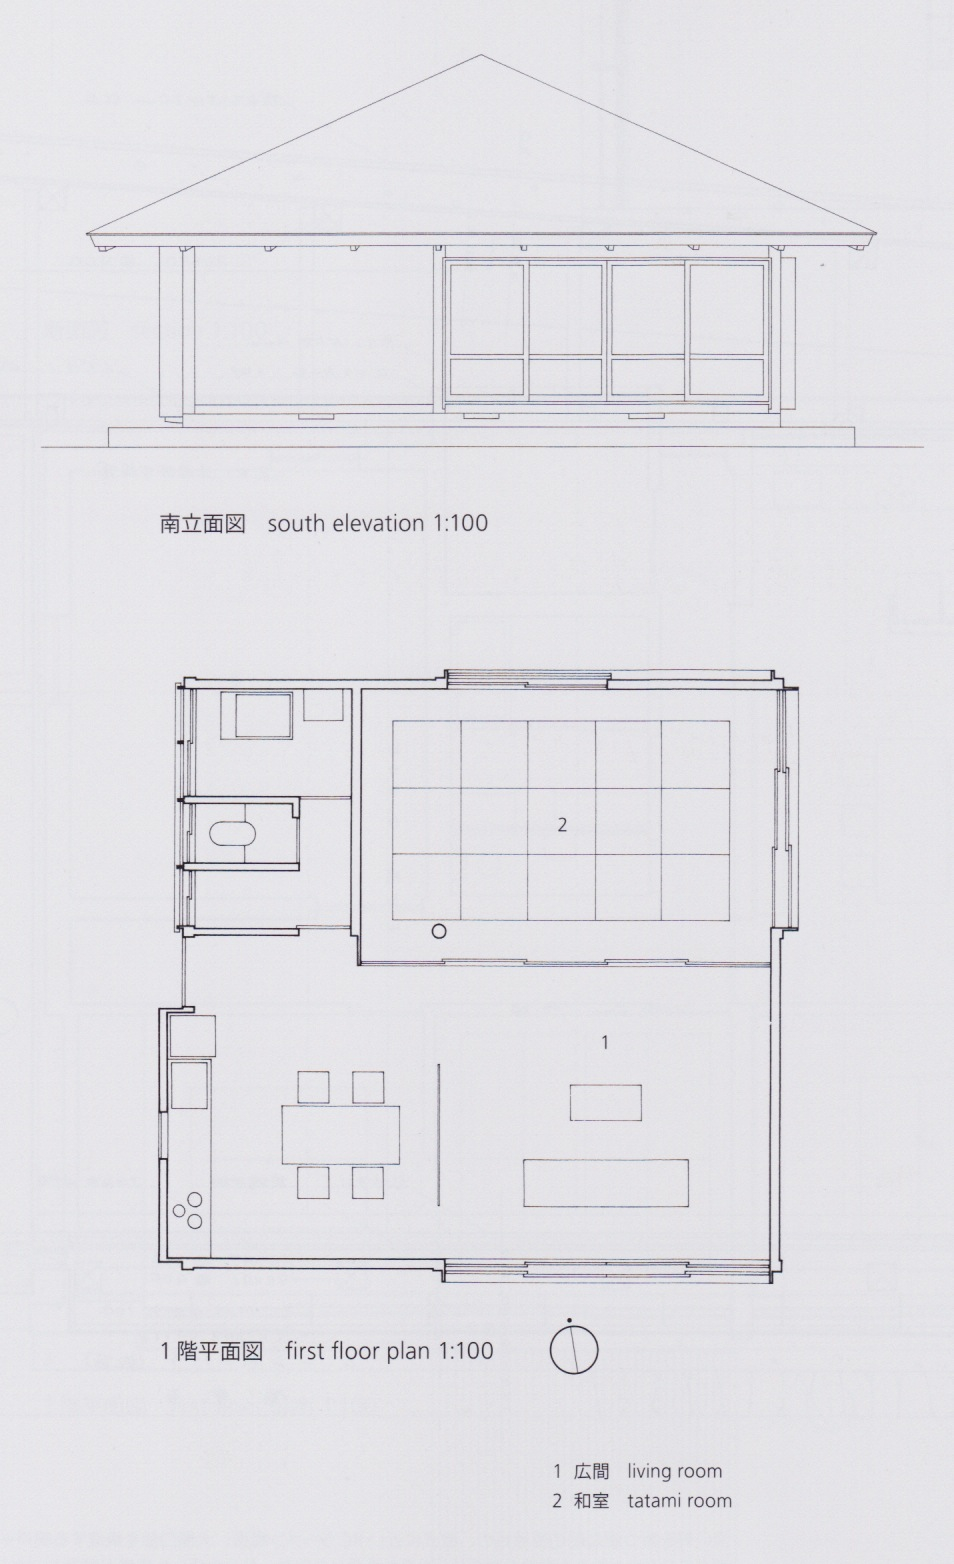 Check how that offset post affects the tatami room top middle below the internal walls dont go all the way up to the roof